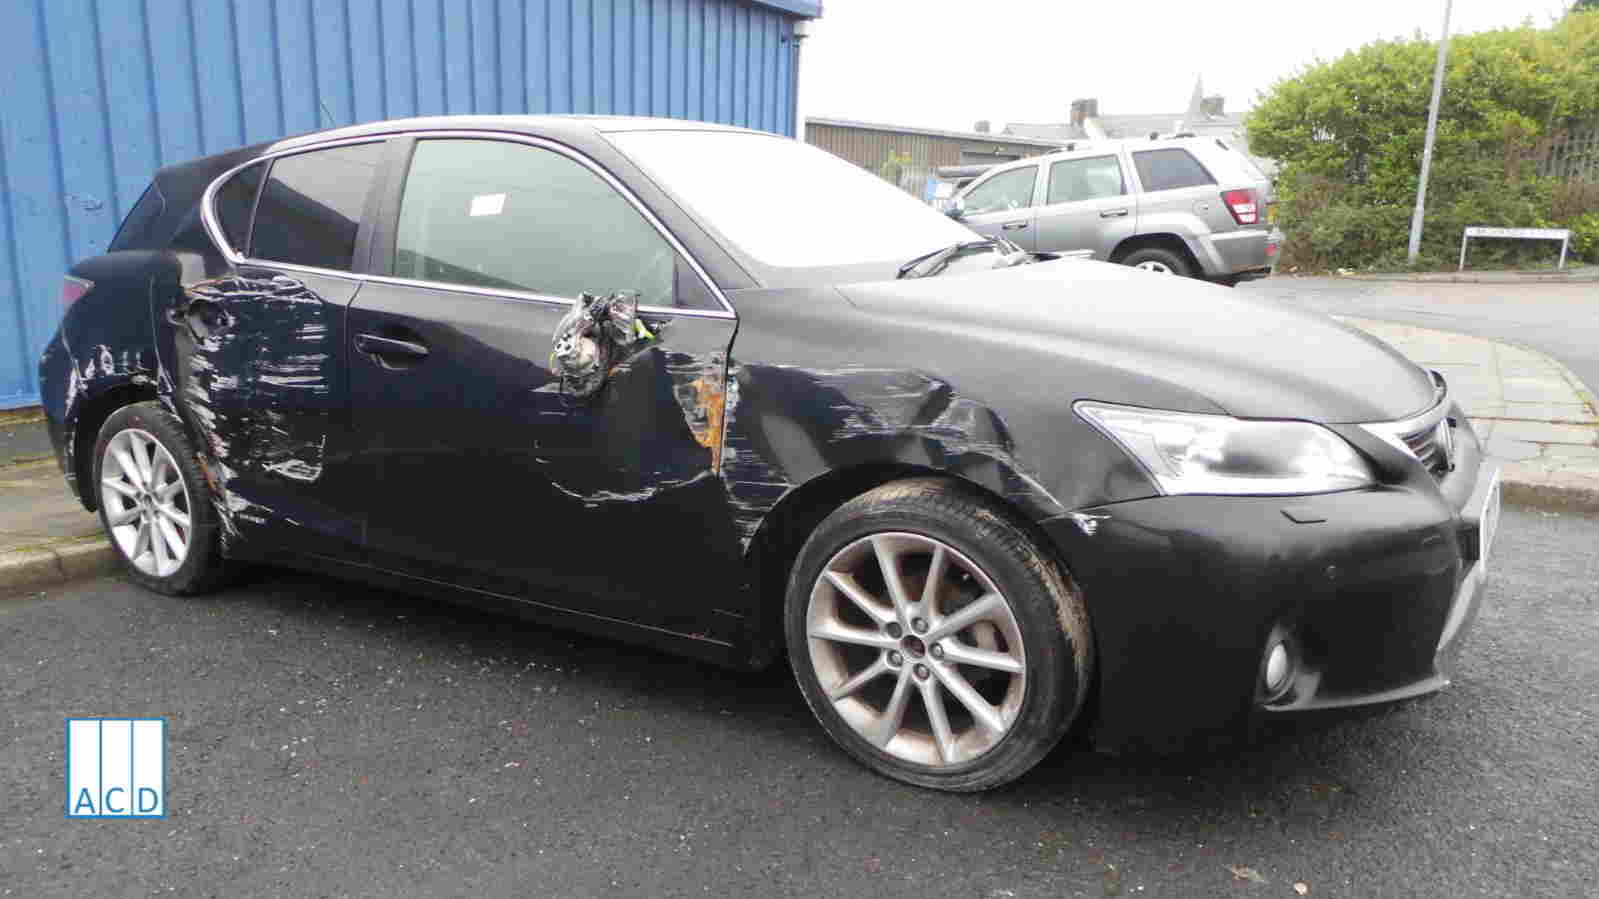 Lexus CT 200H 1.8L Petrol 1-Speed Automatic 2012 #3063 01